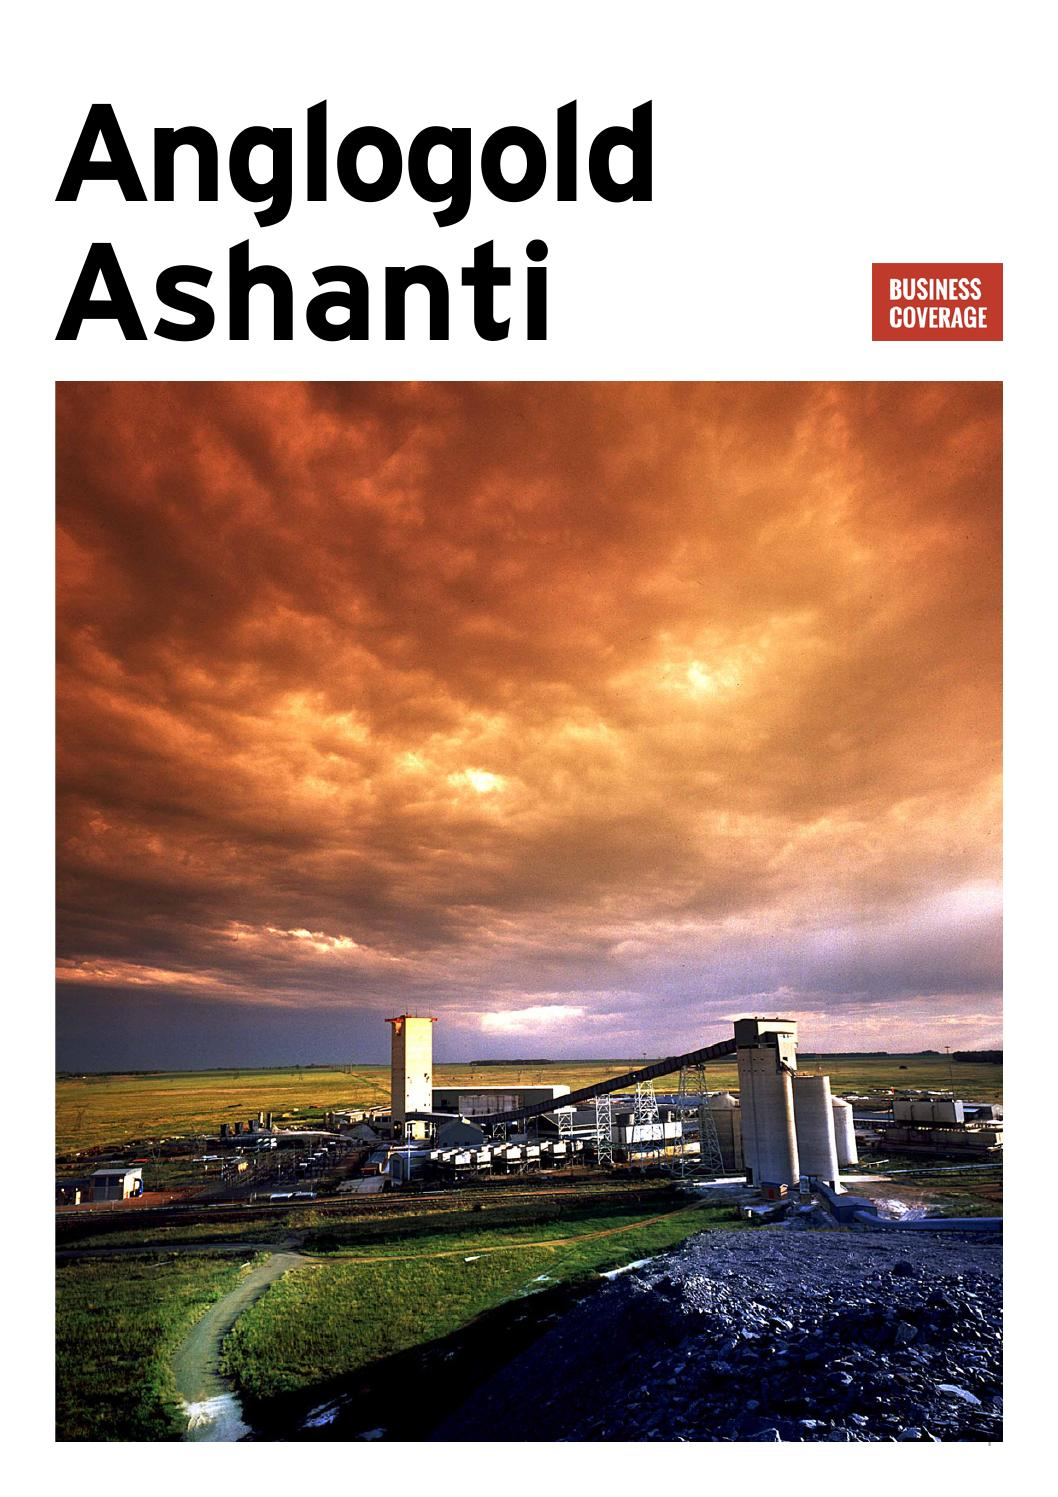 Anglogold Ashanti by Business Coverage  issuu